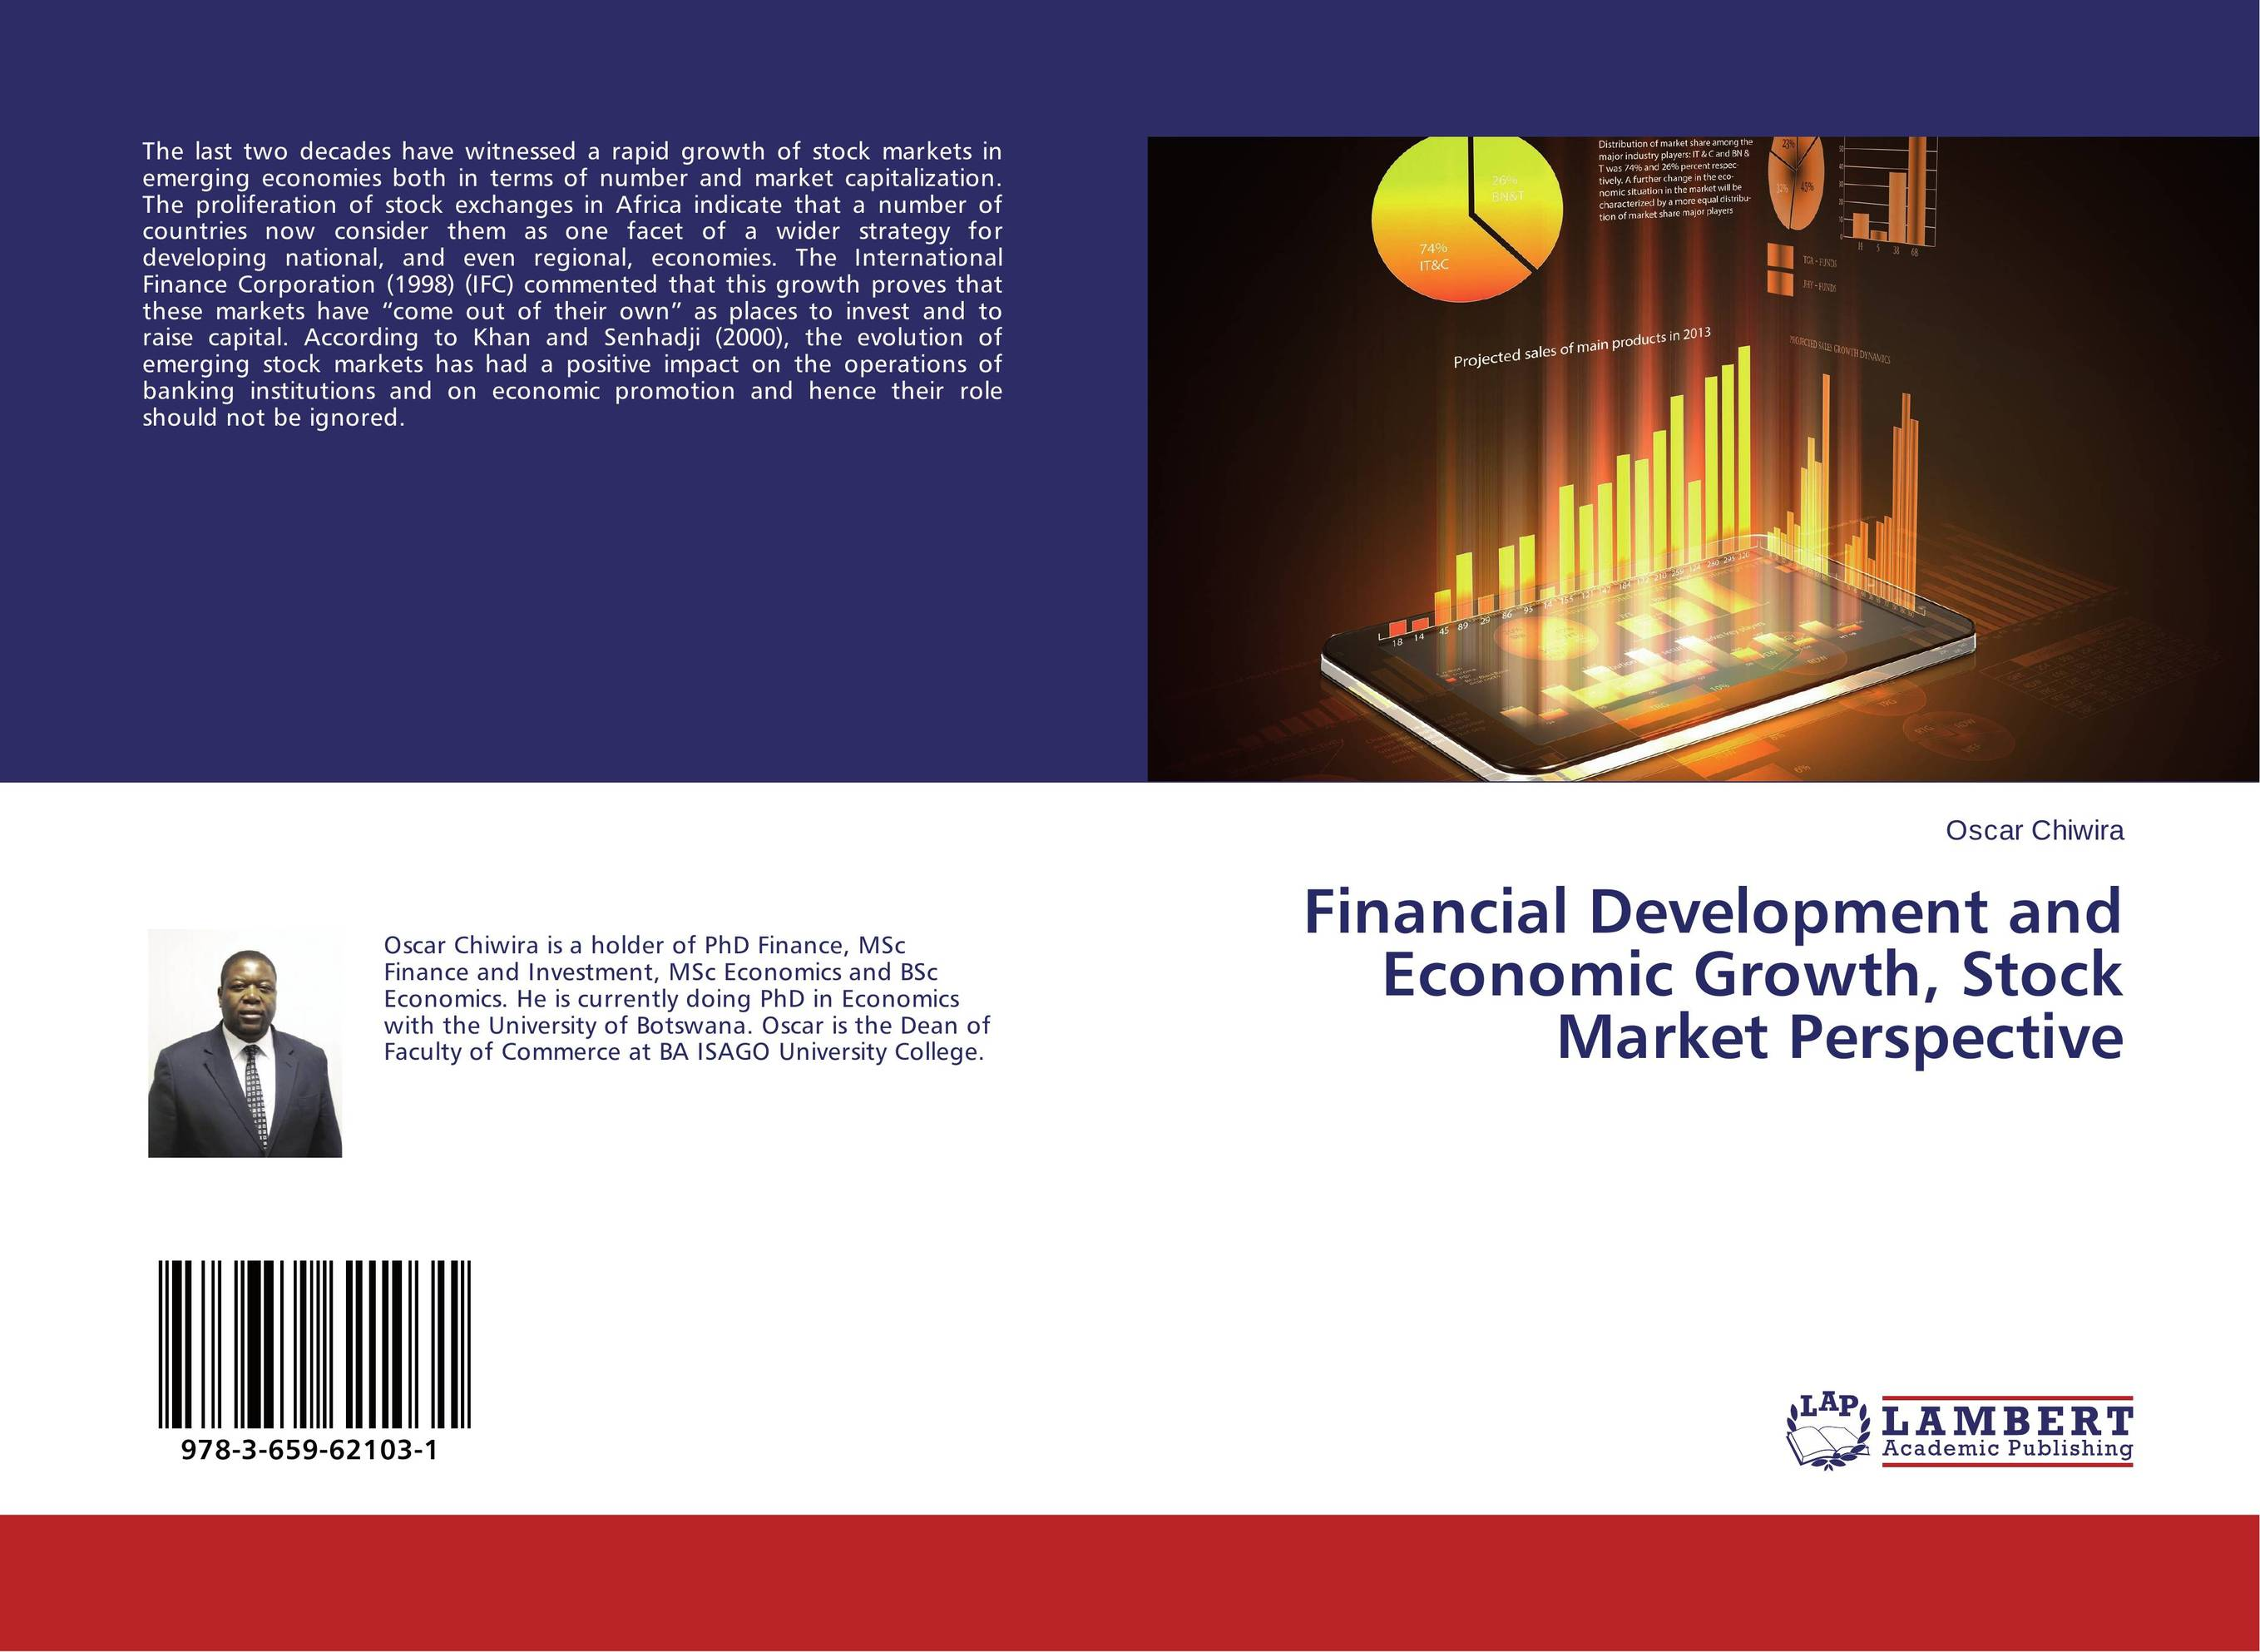 stock market development and economic growth in nigeria economics essay Nigeria's leading companies quoted on the nigerian stock exchange, nse, have dented the picture of a recovering economy as painted by several macroeconomic performance indicators released by key.